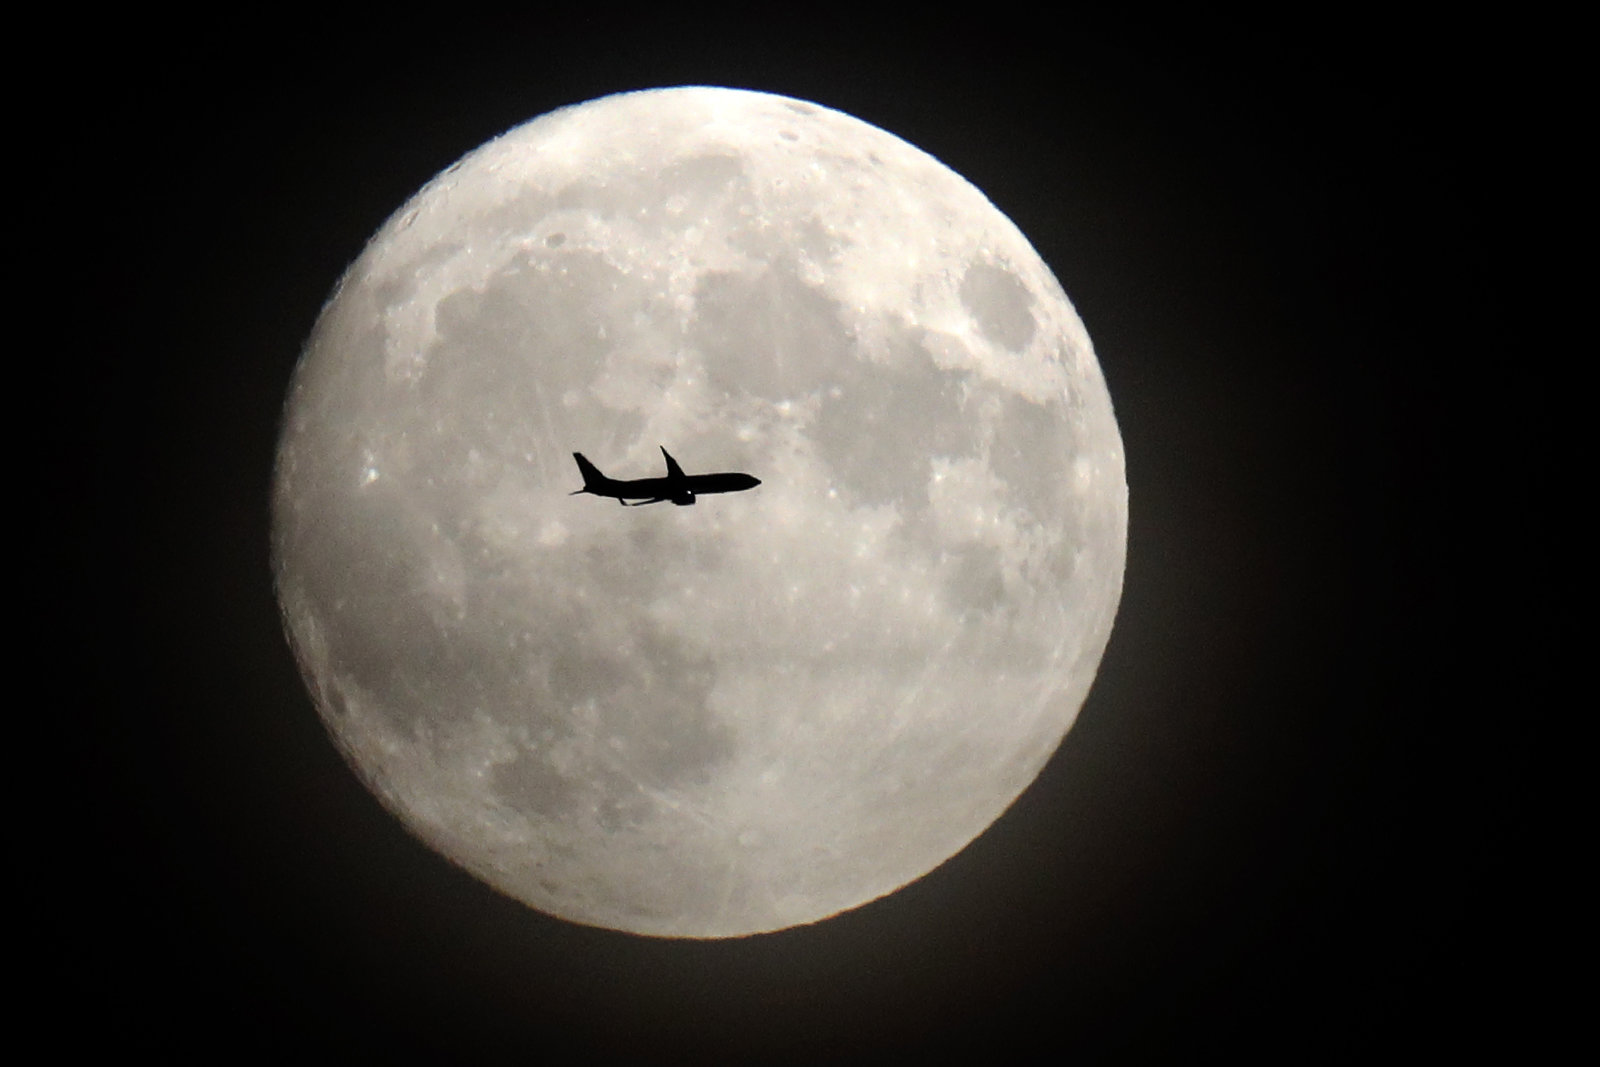 A supermoon with a plane flying in front of